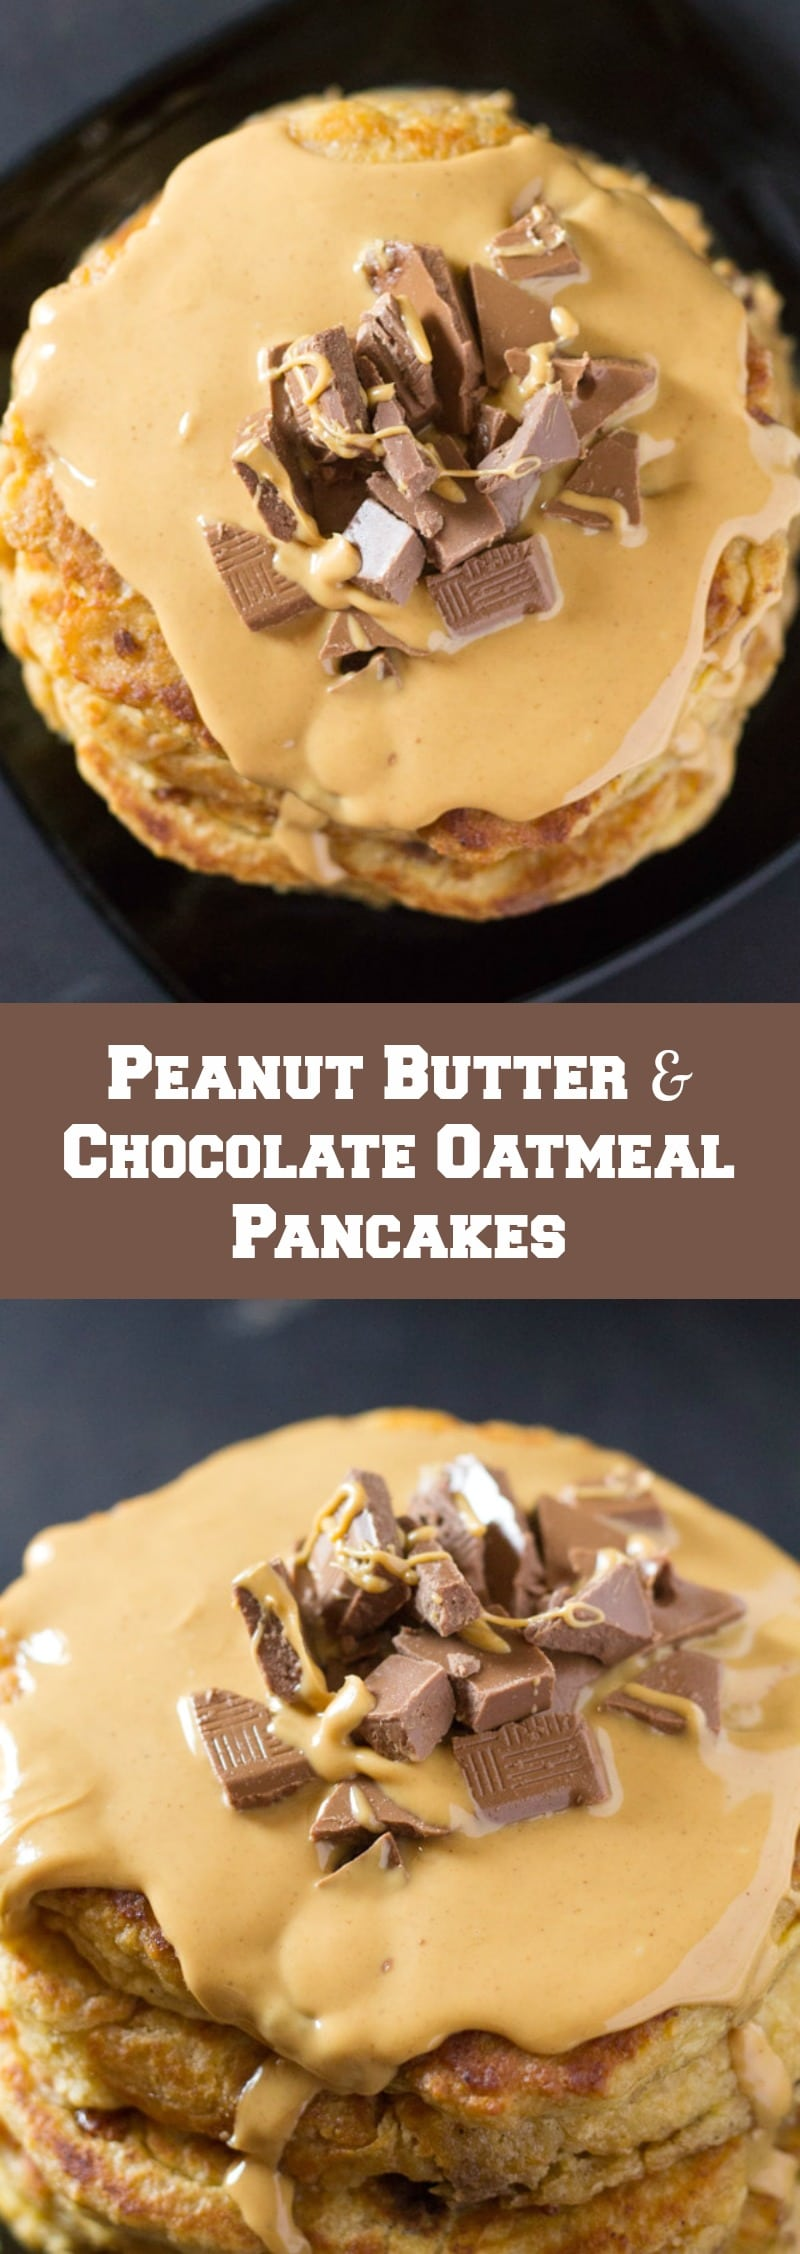 Peanut Butter & Chocolate Chunk Oatmeal Pancakes